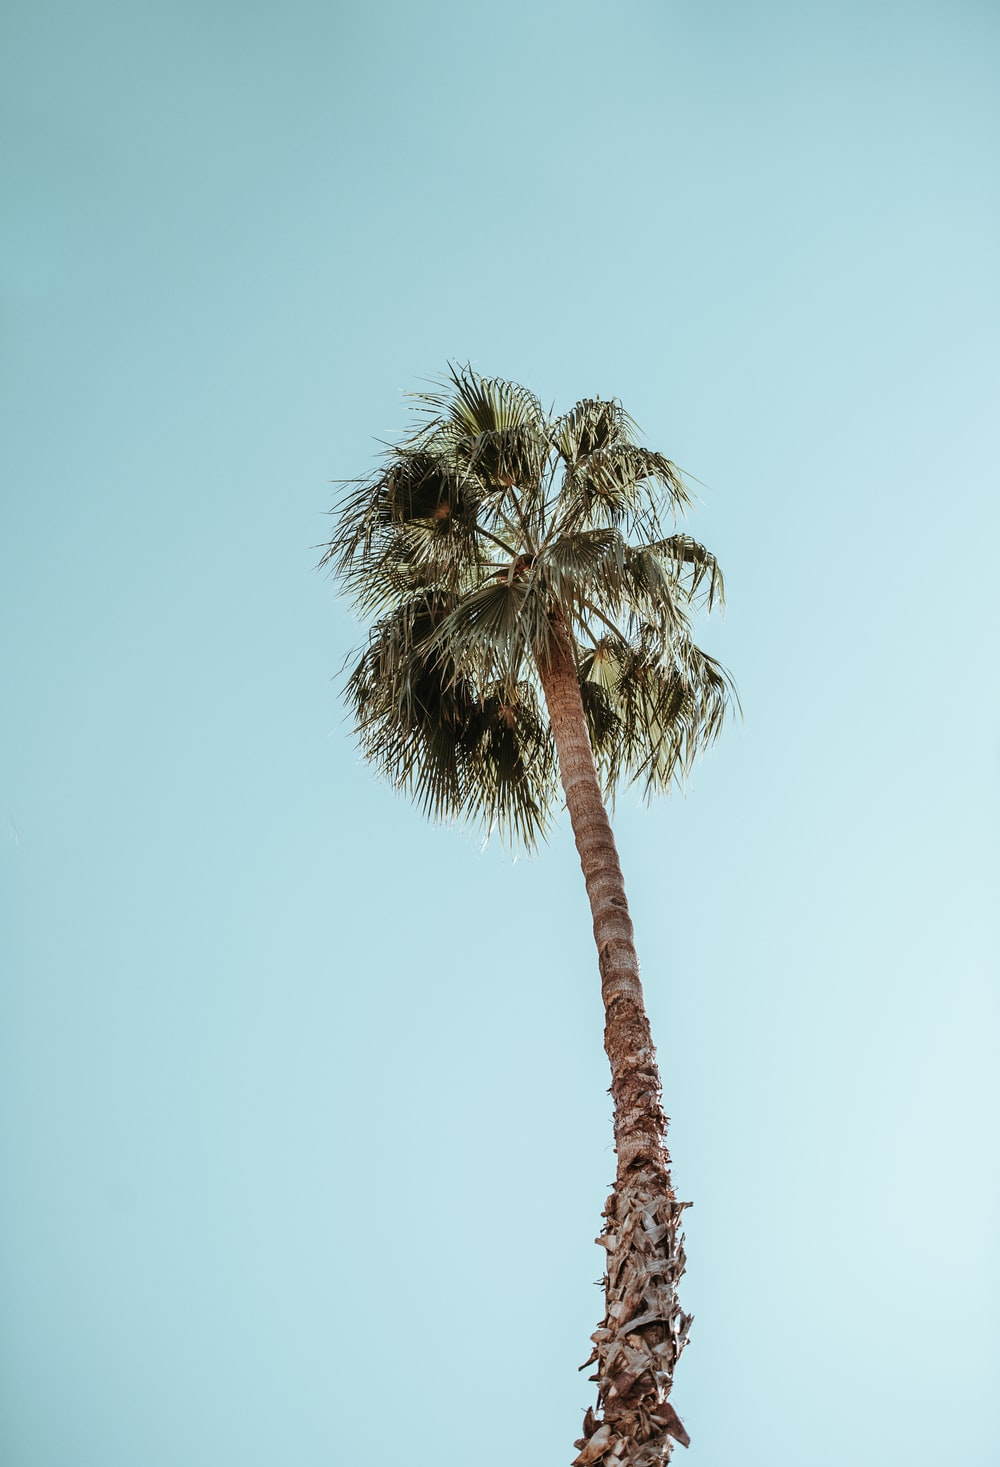 photograph of palm tree